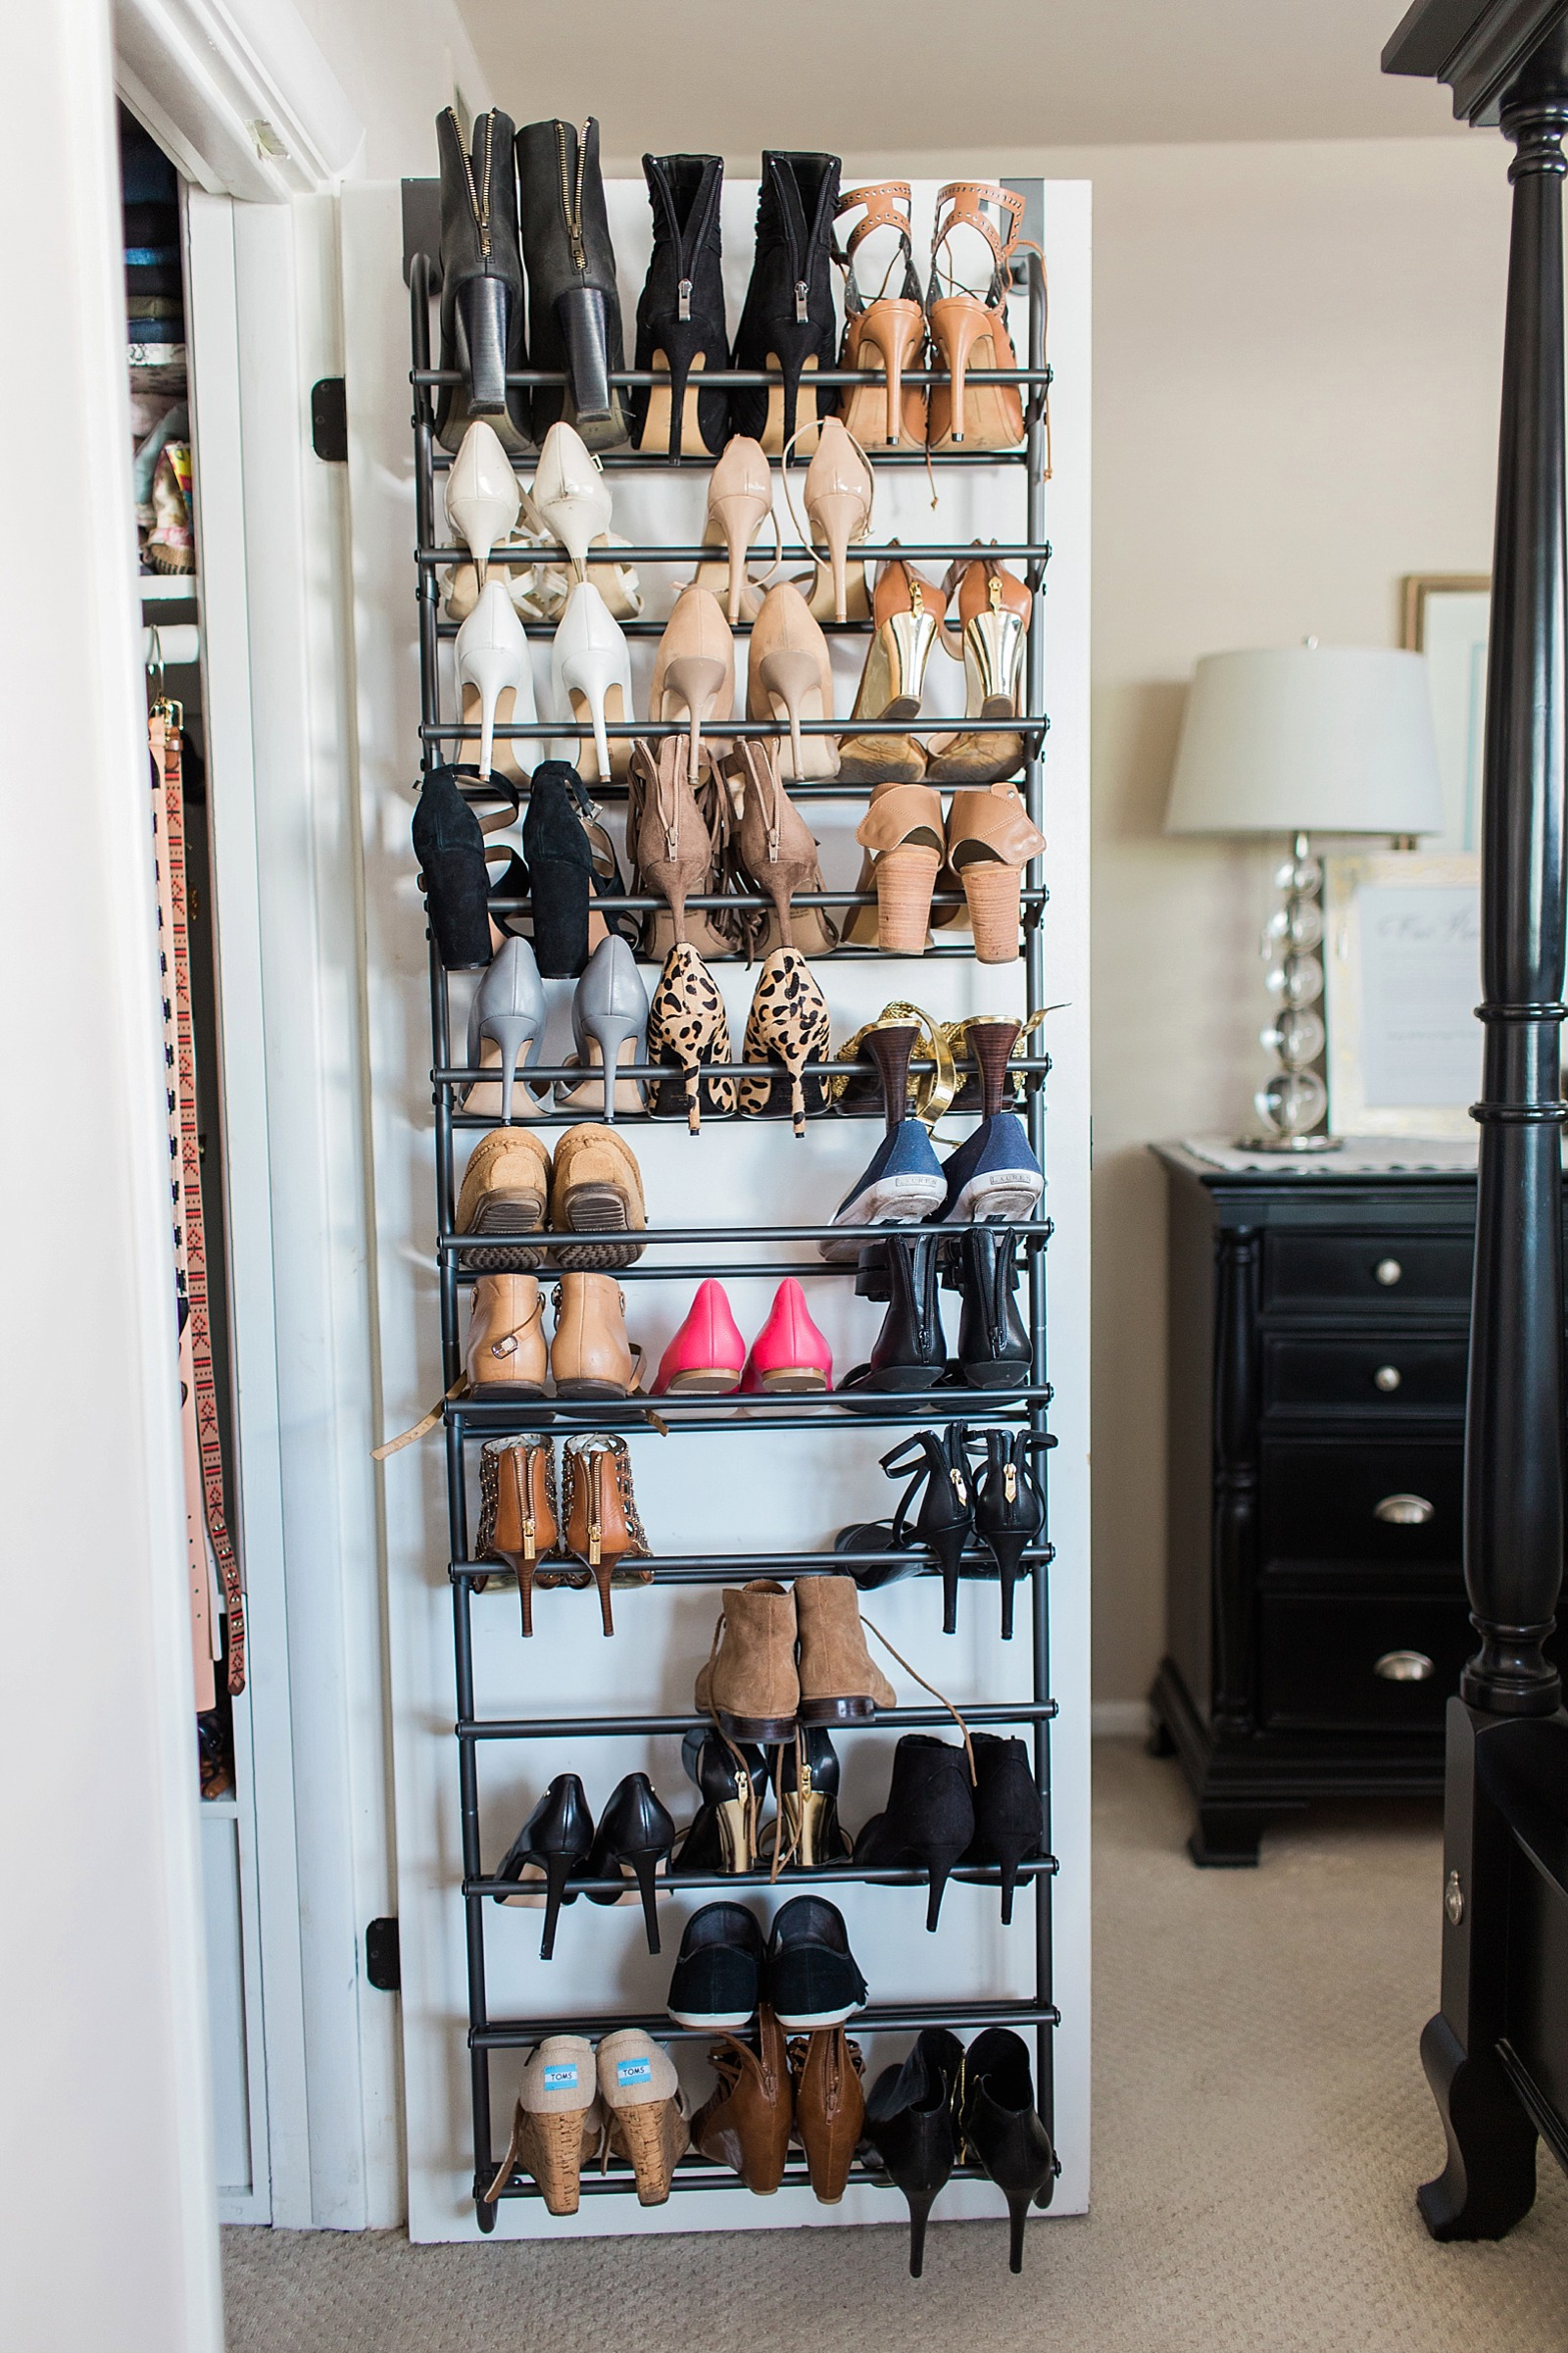 36 pairs of shoes behind the closet door